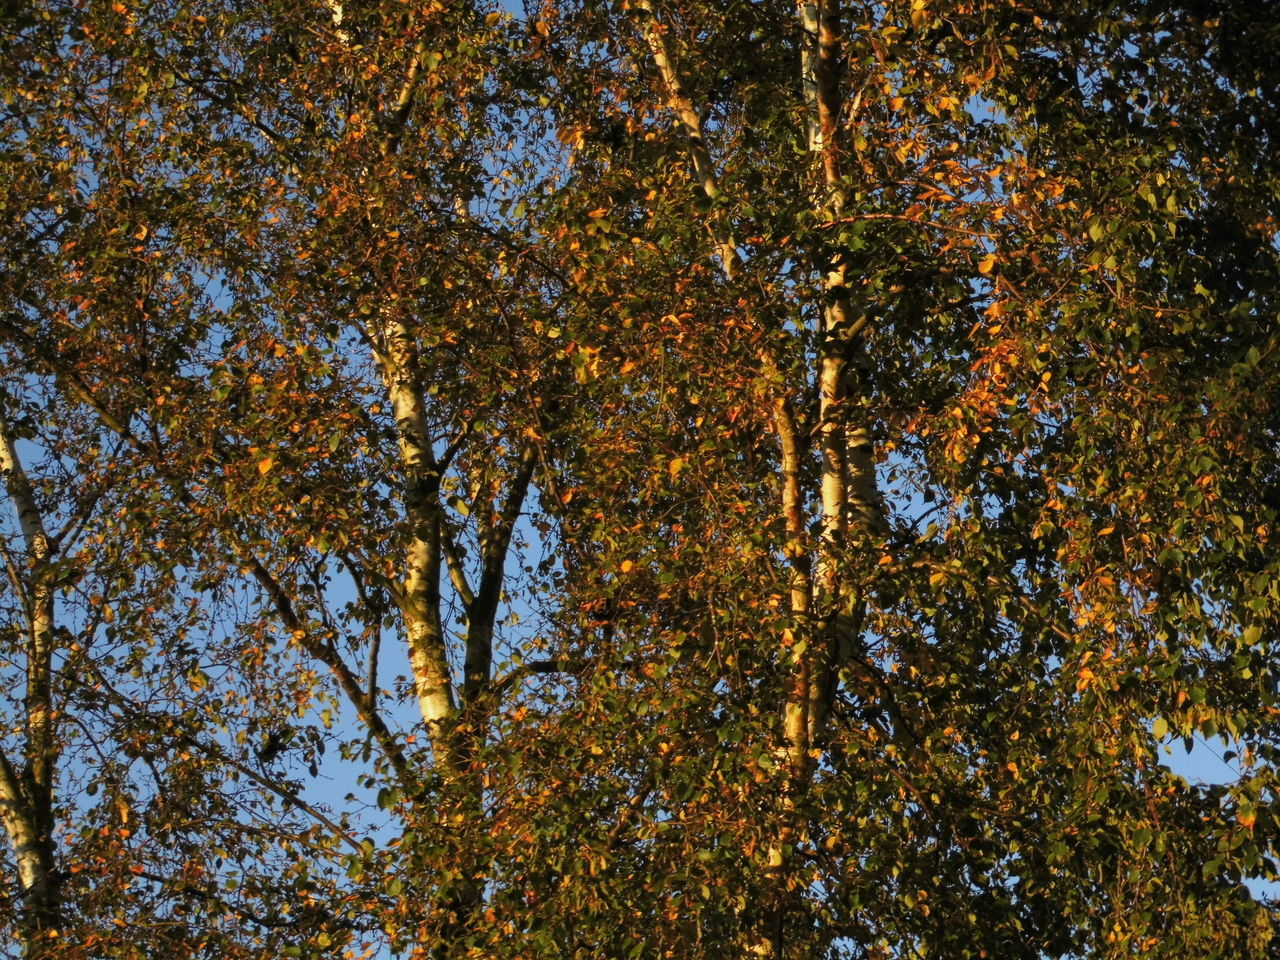 tree, nature, change, autumn, no people, full frame, day, outdoors, beauty in nature, leaf, low angle view, yellow, branch, scenics, close-up, sky